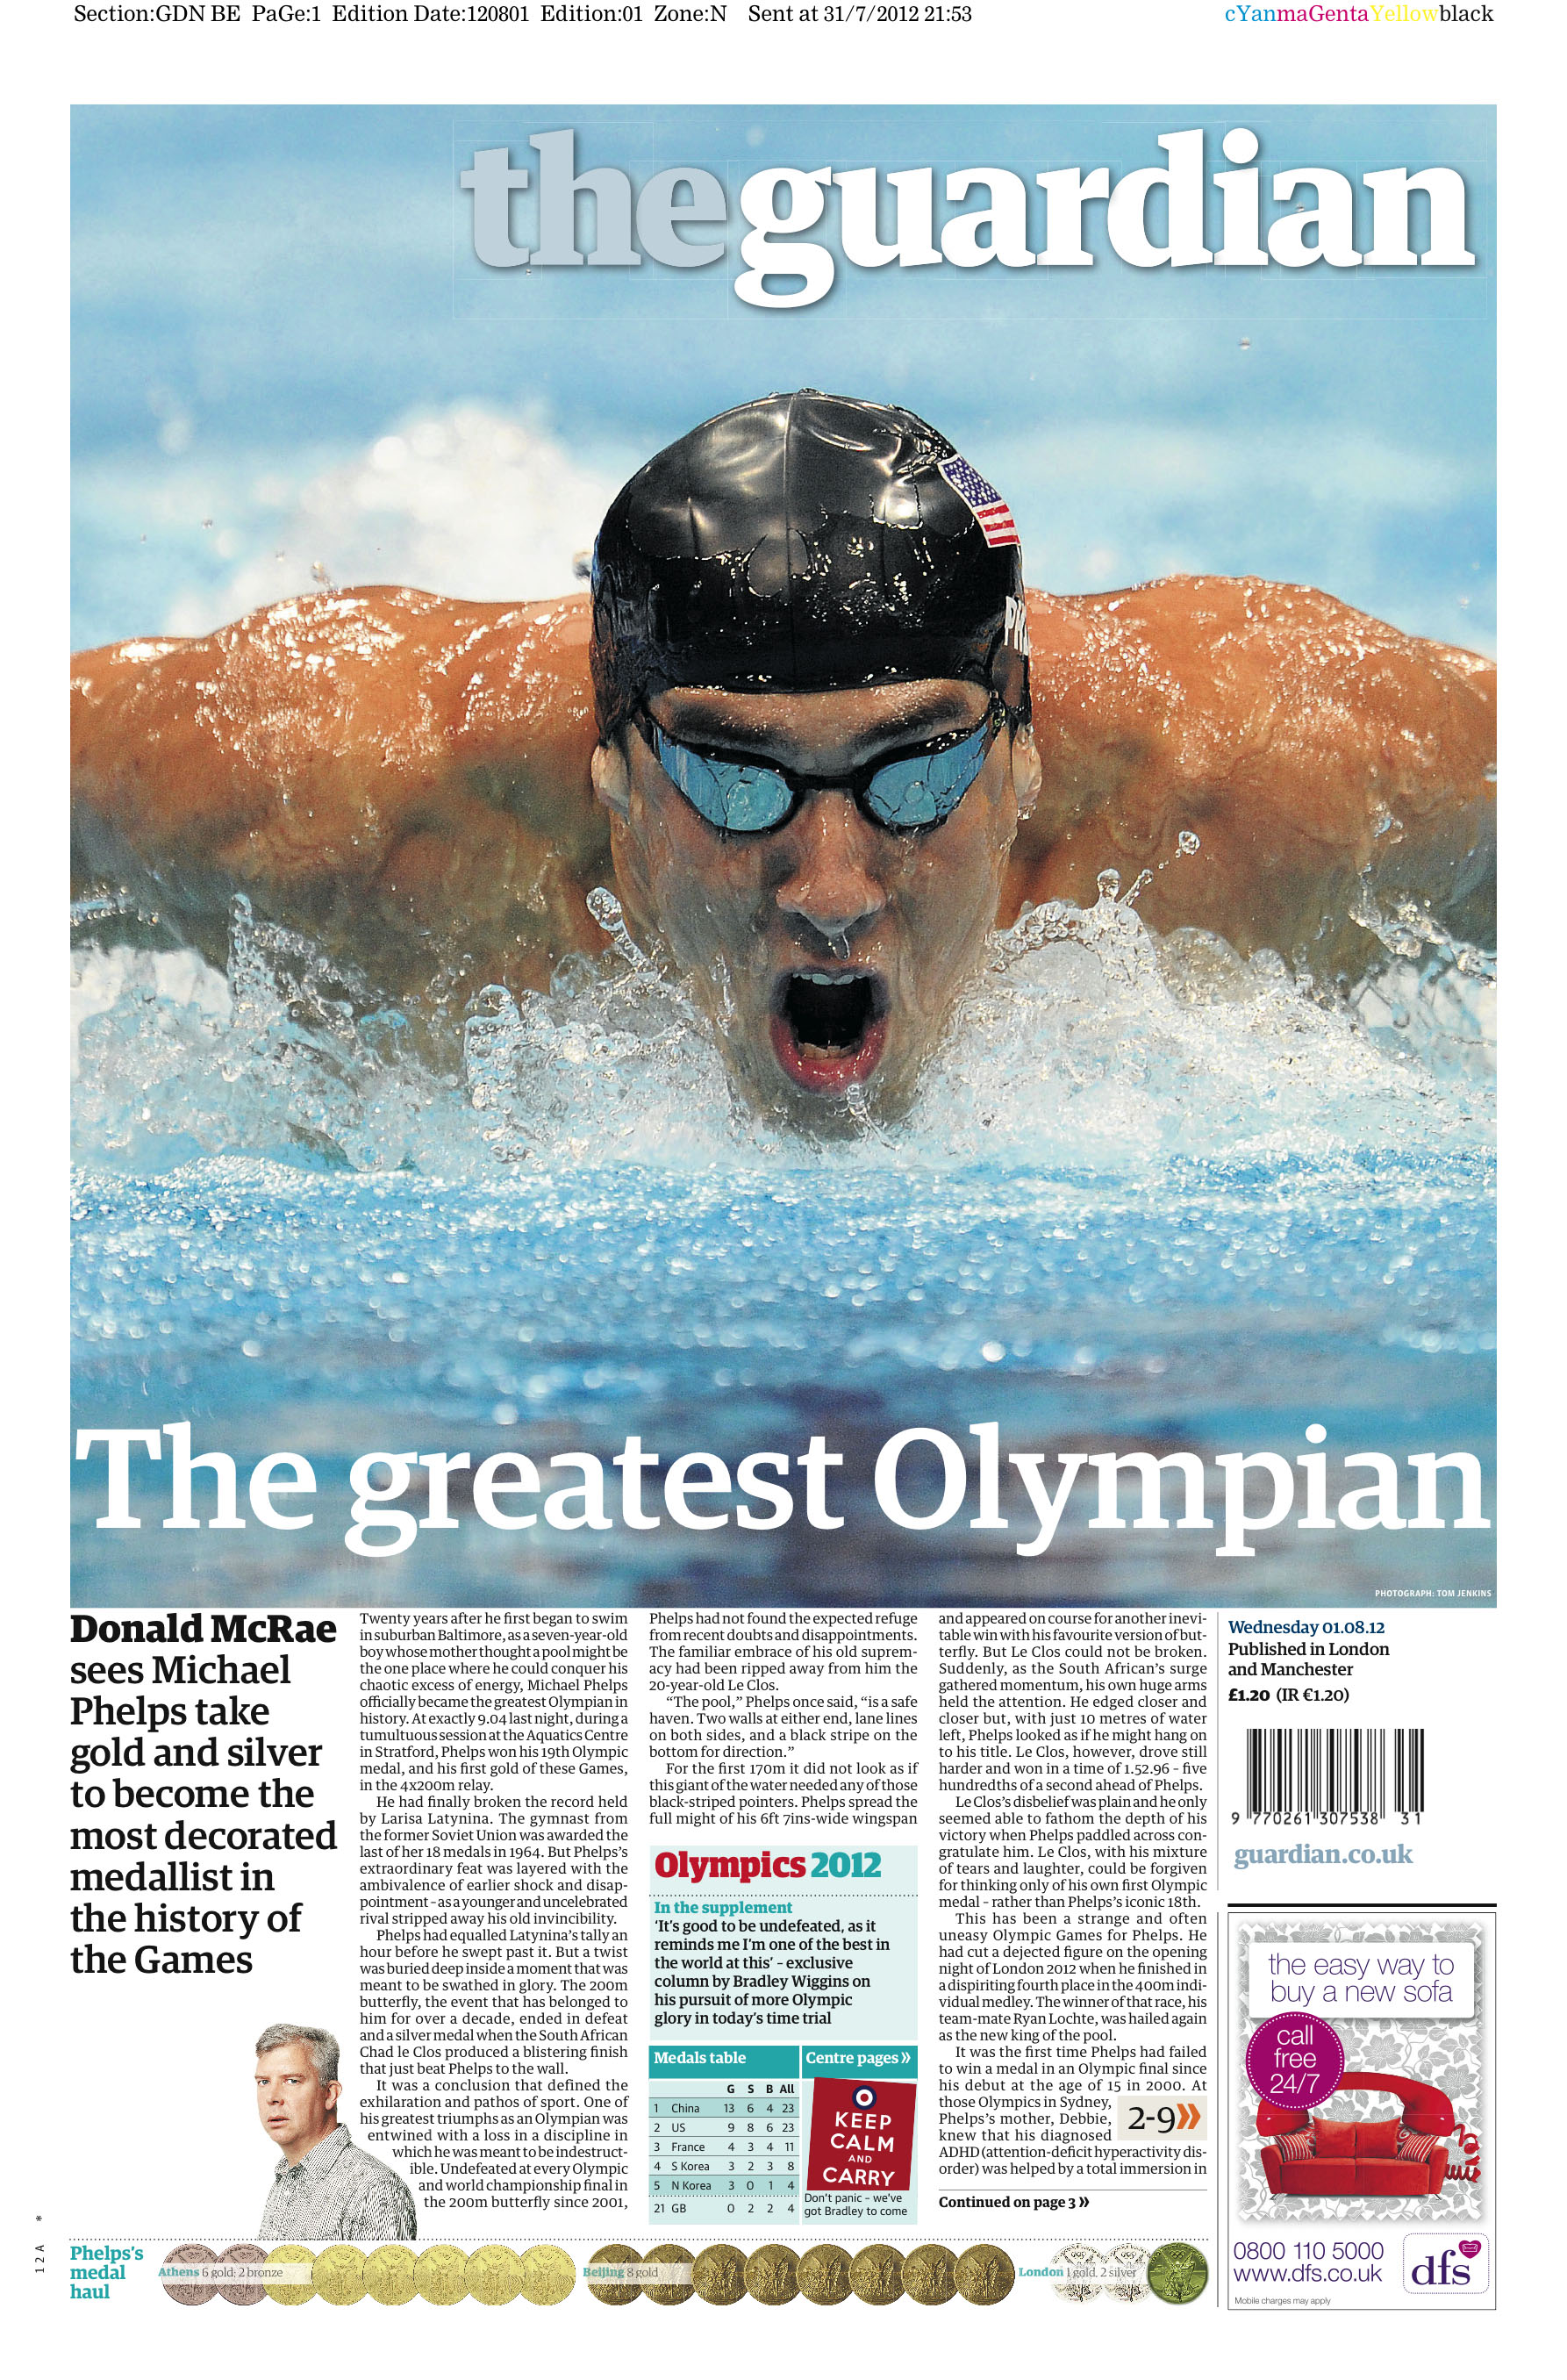 Olympic Medals 11th August Phelpsguardian